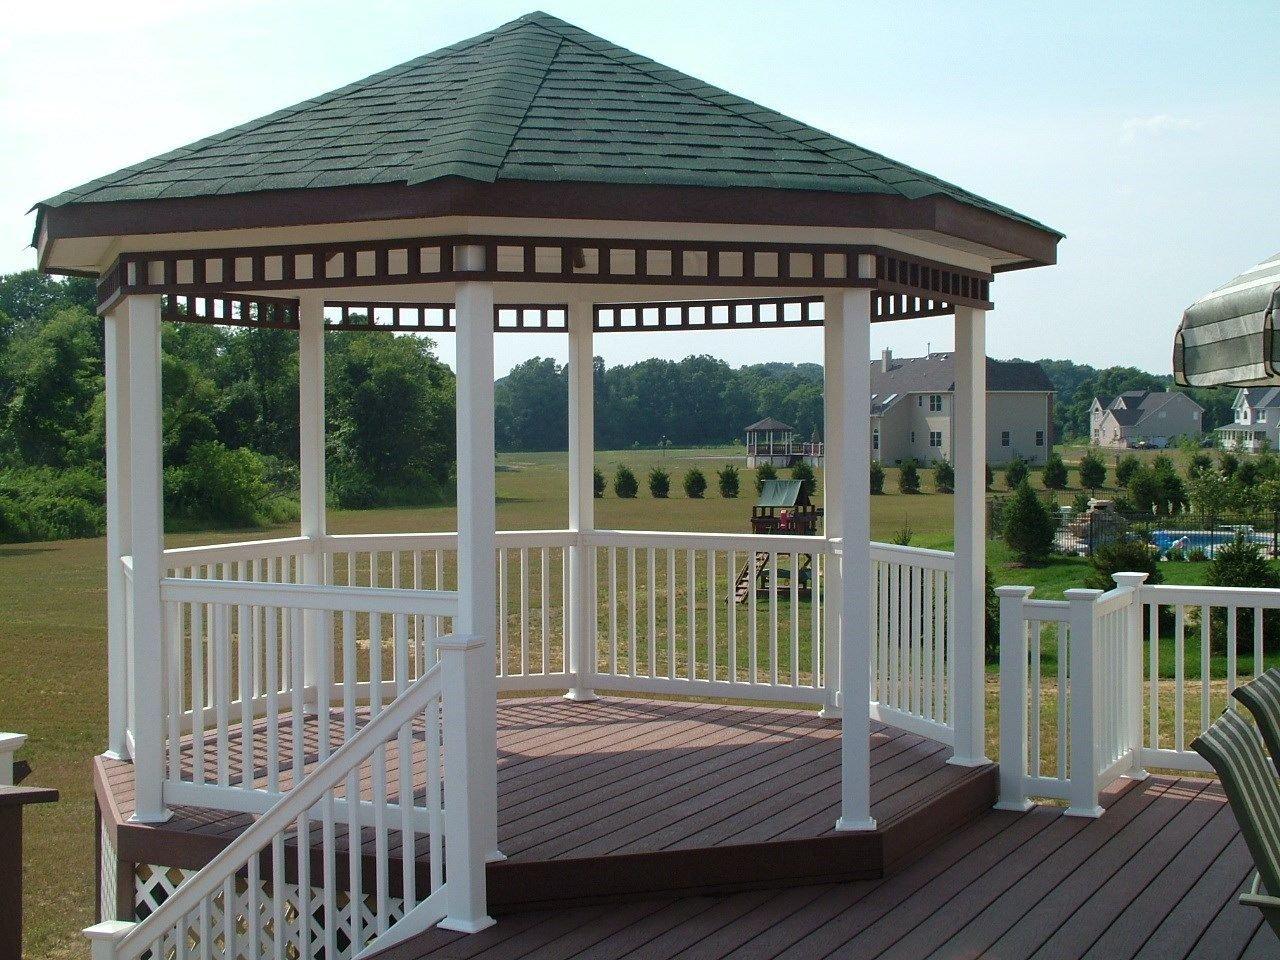 Custom Gazebo deck in Millstone NJ - Picture 3400